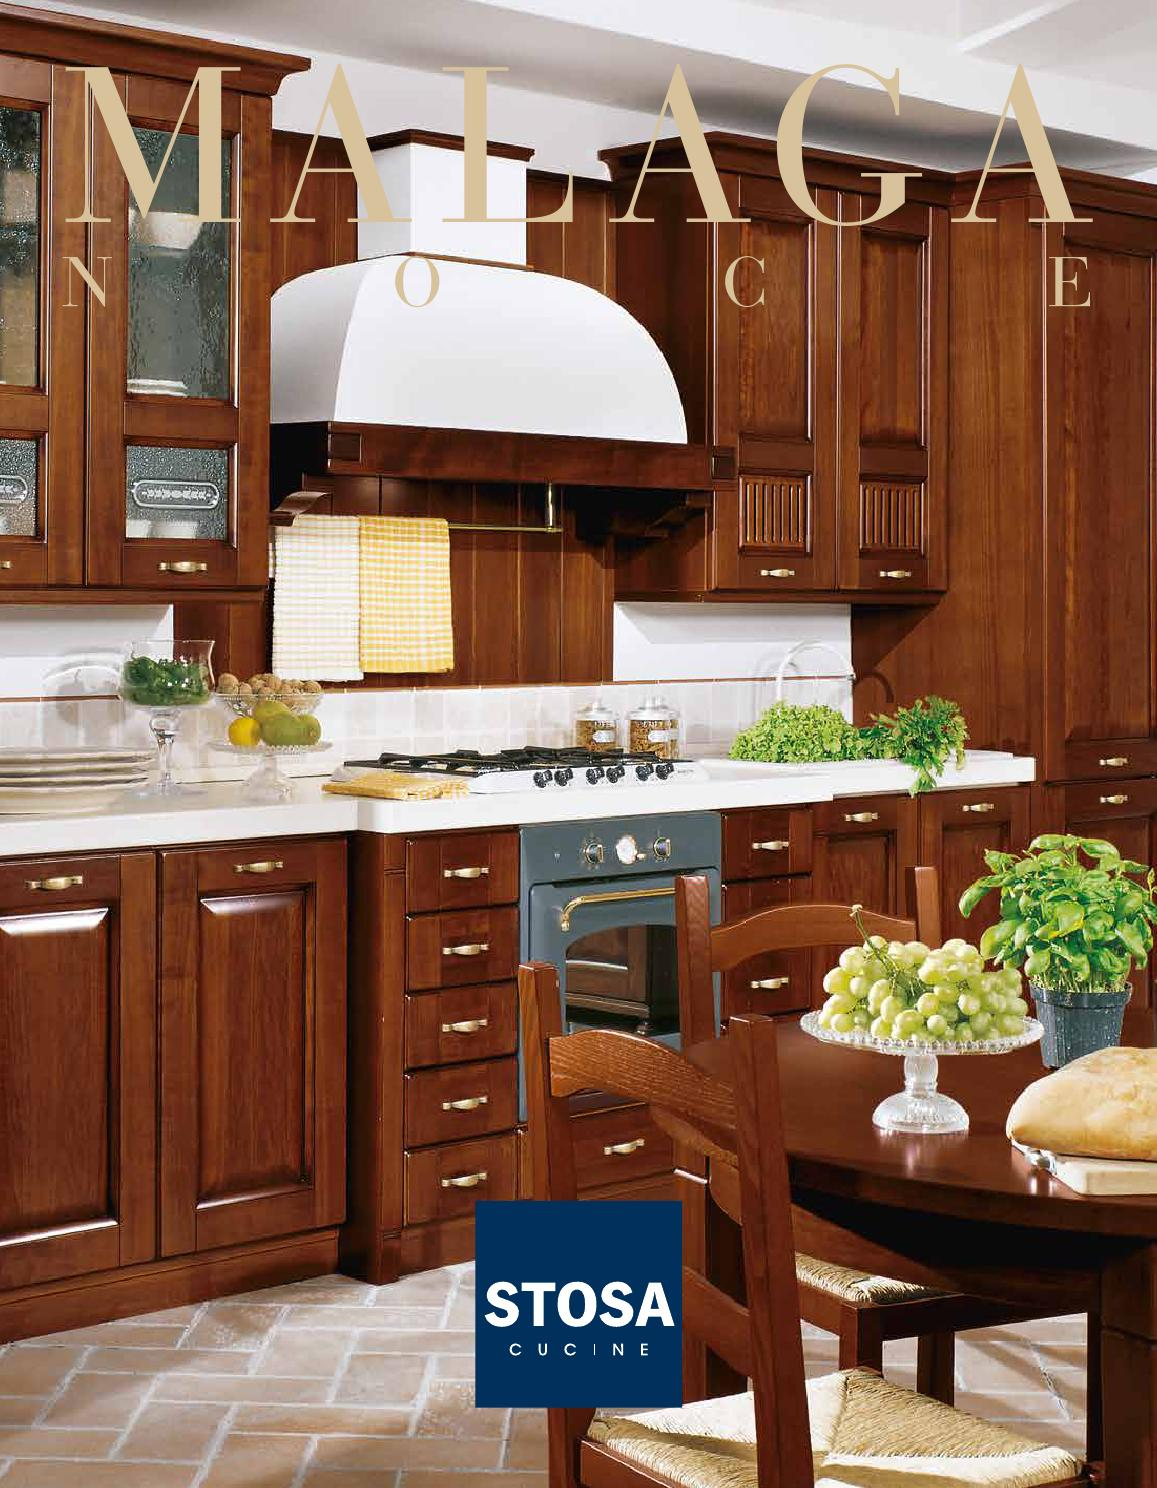 Catalogo cucine classiche stosa malaga by stosa cucine issuu for Cucine catalogo